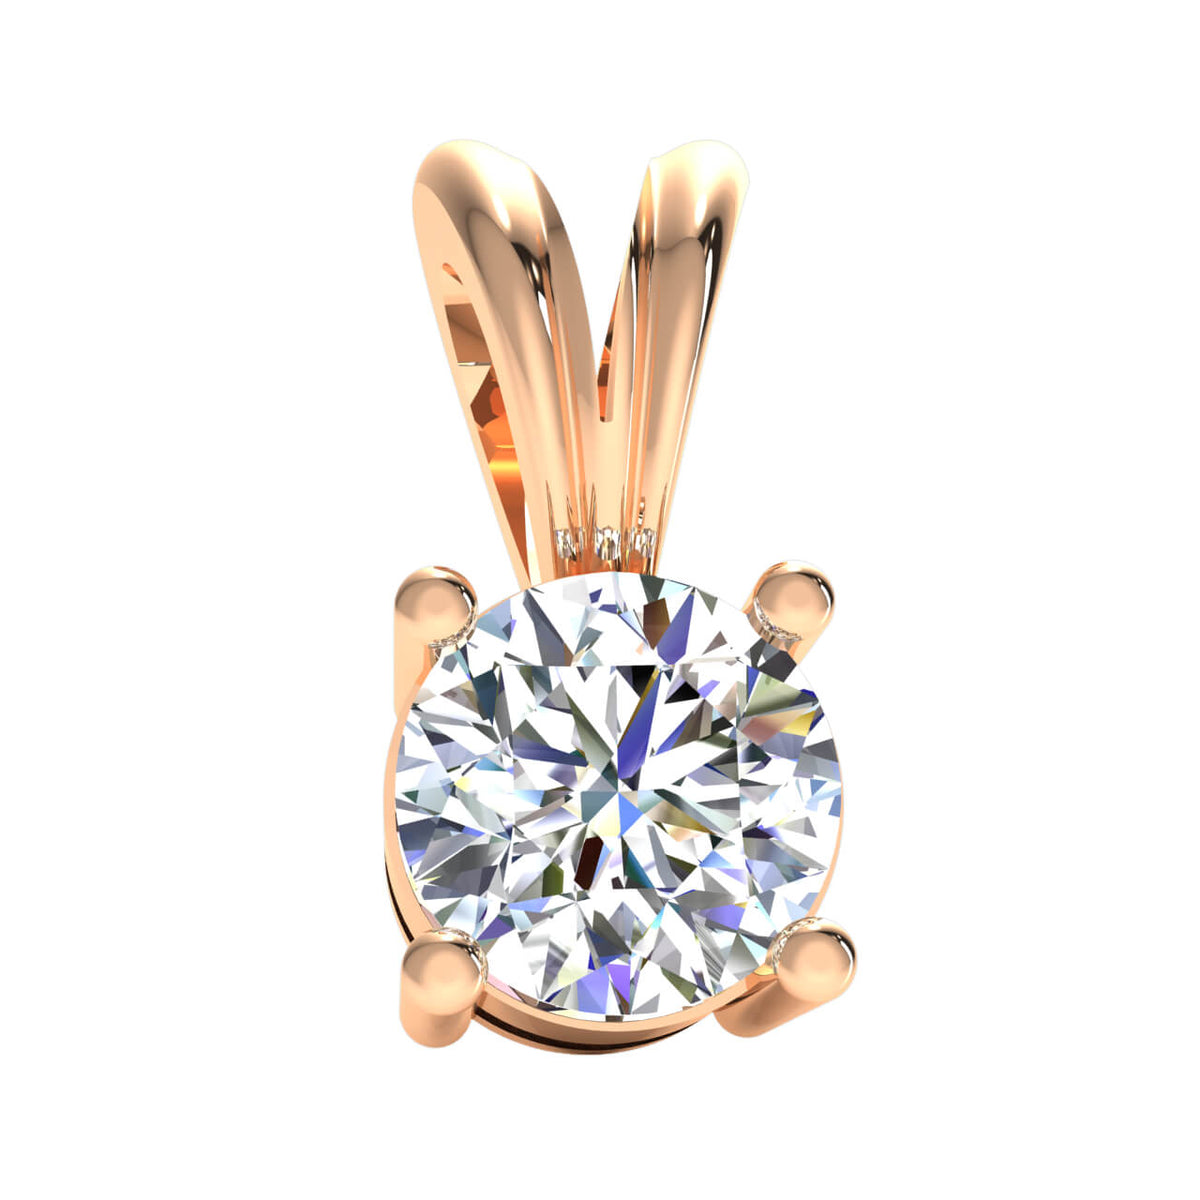 0.25 Ct Drop Solitaire Pendant For Adults Round H SI2 Diamond 10k Gold